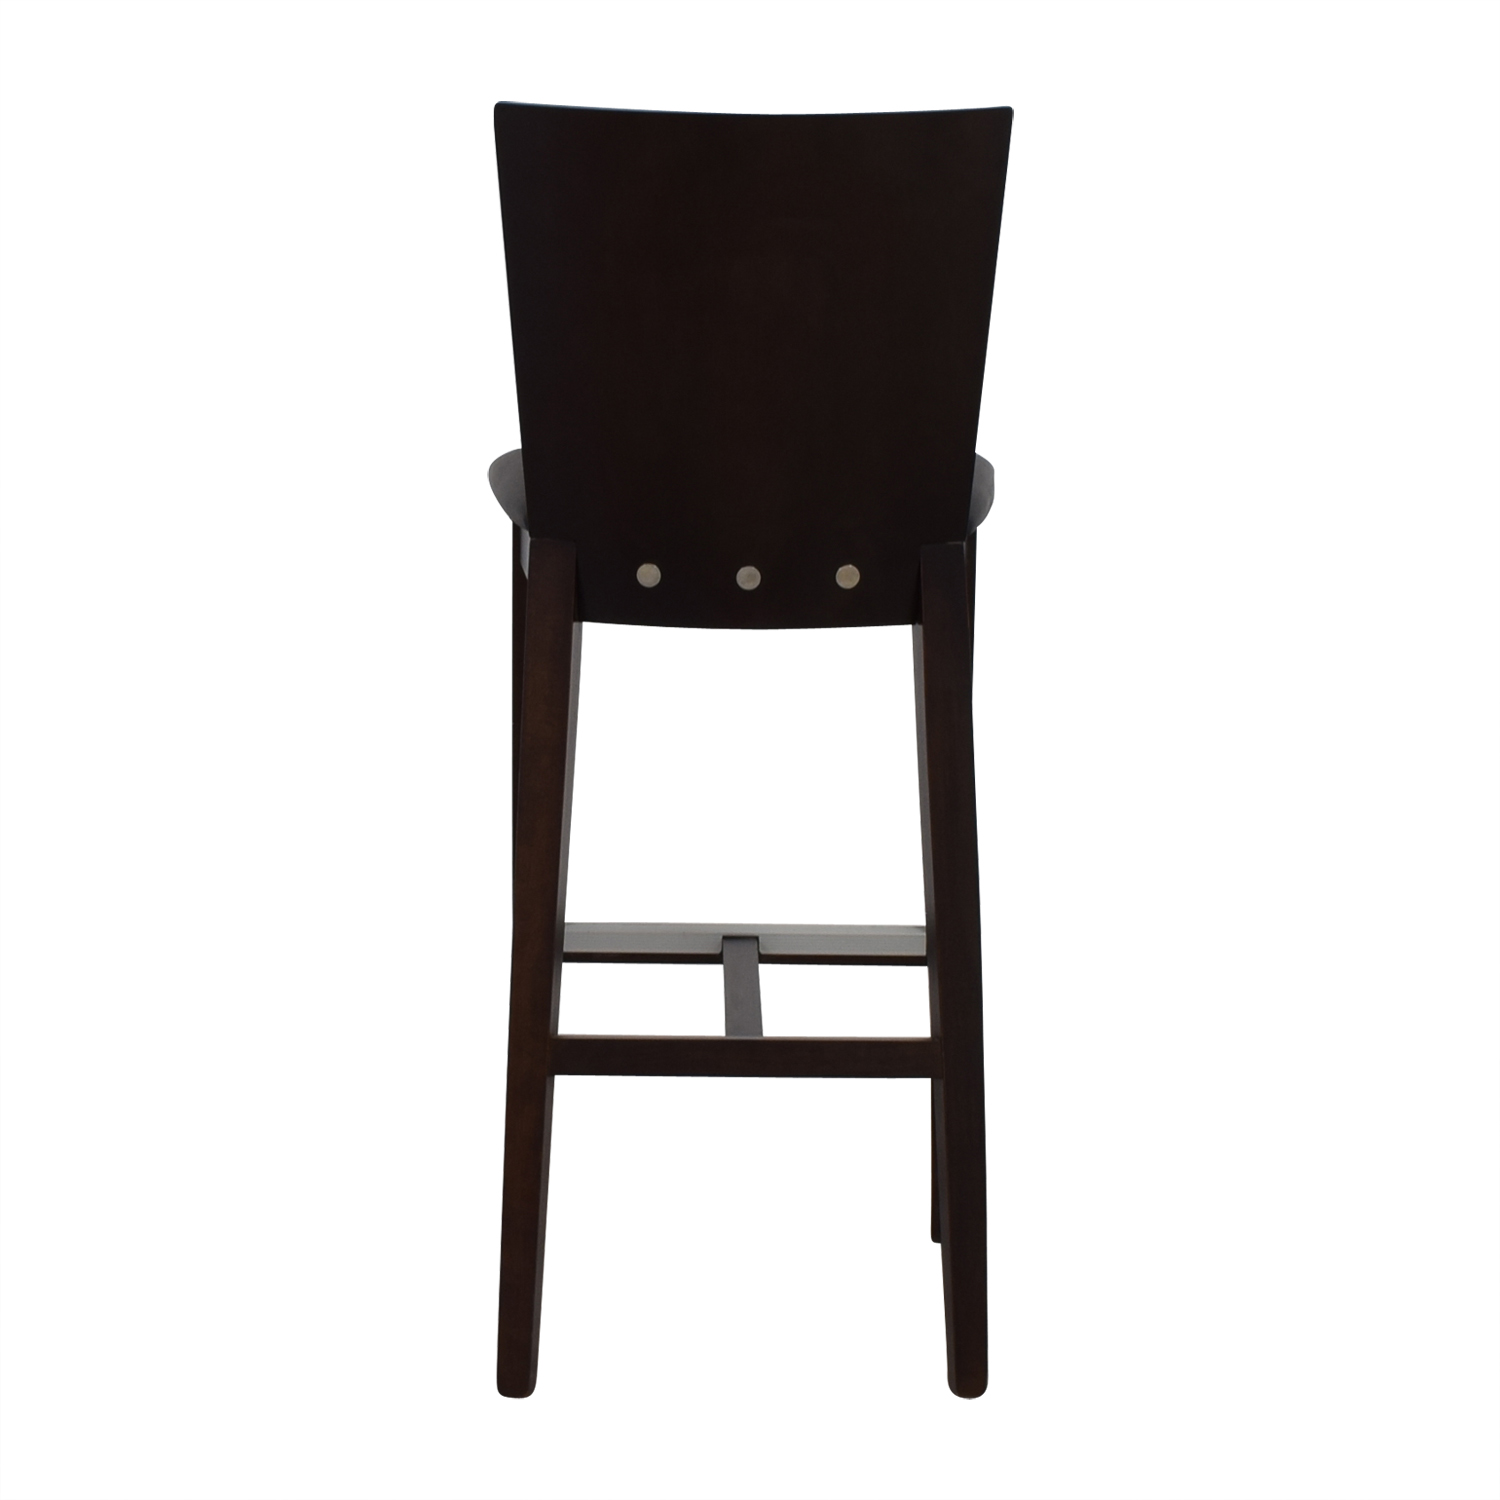 Newspec Newspec Black and Cherry Wood Bar Chair dimensions